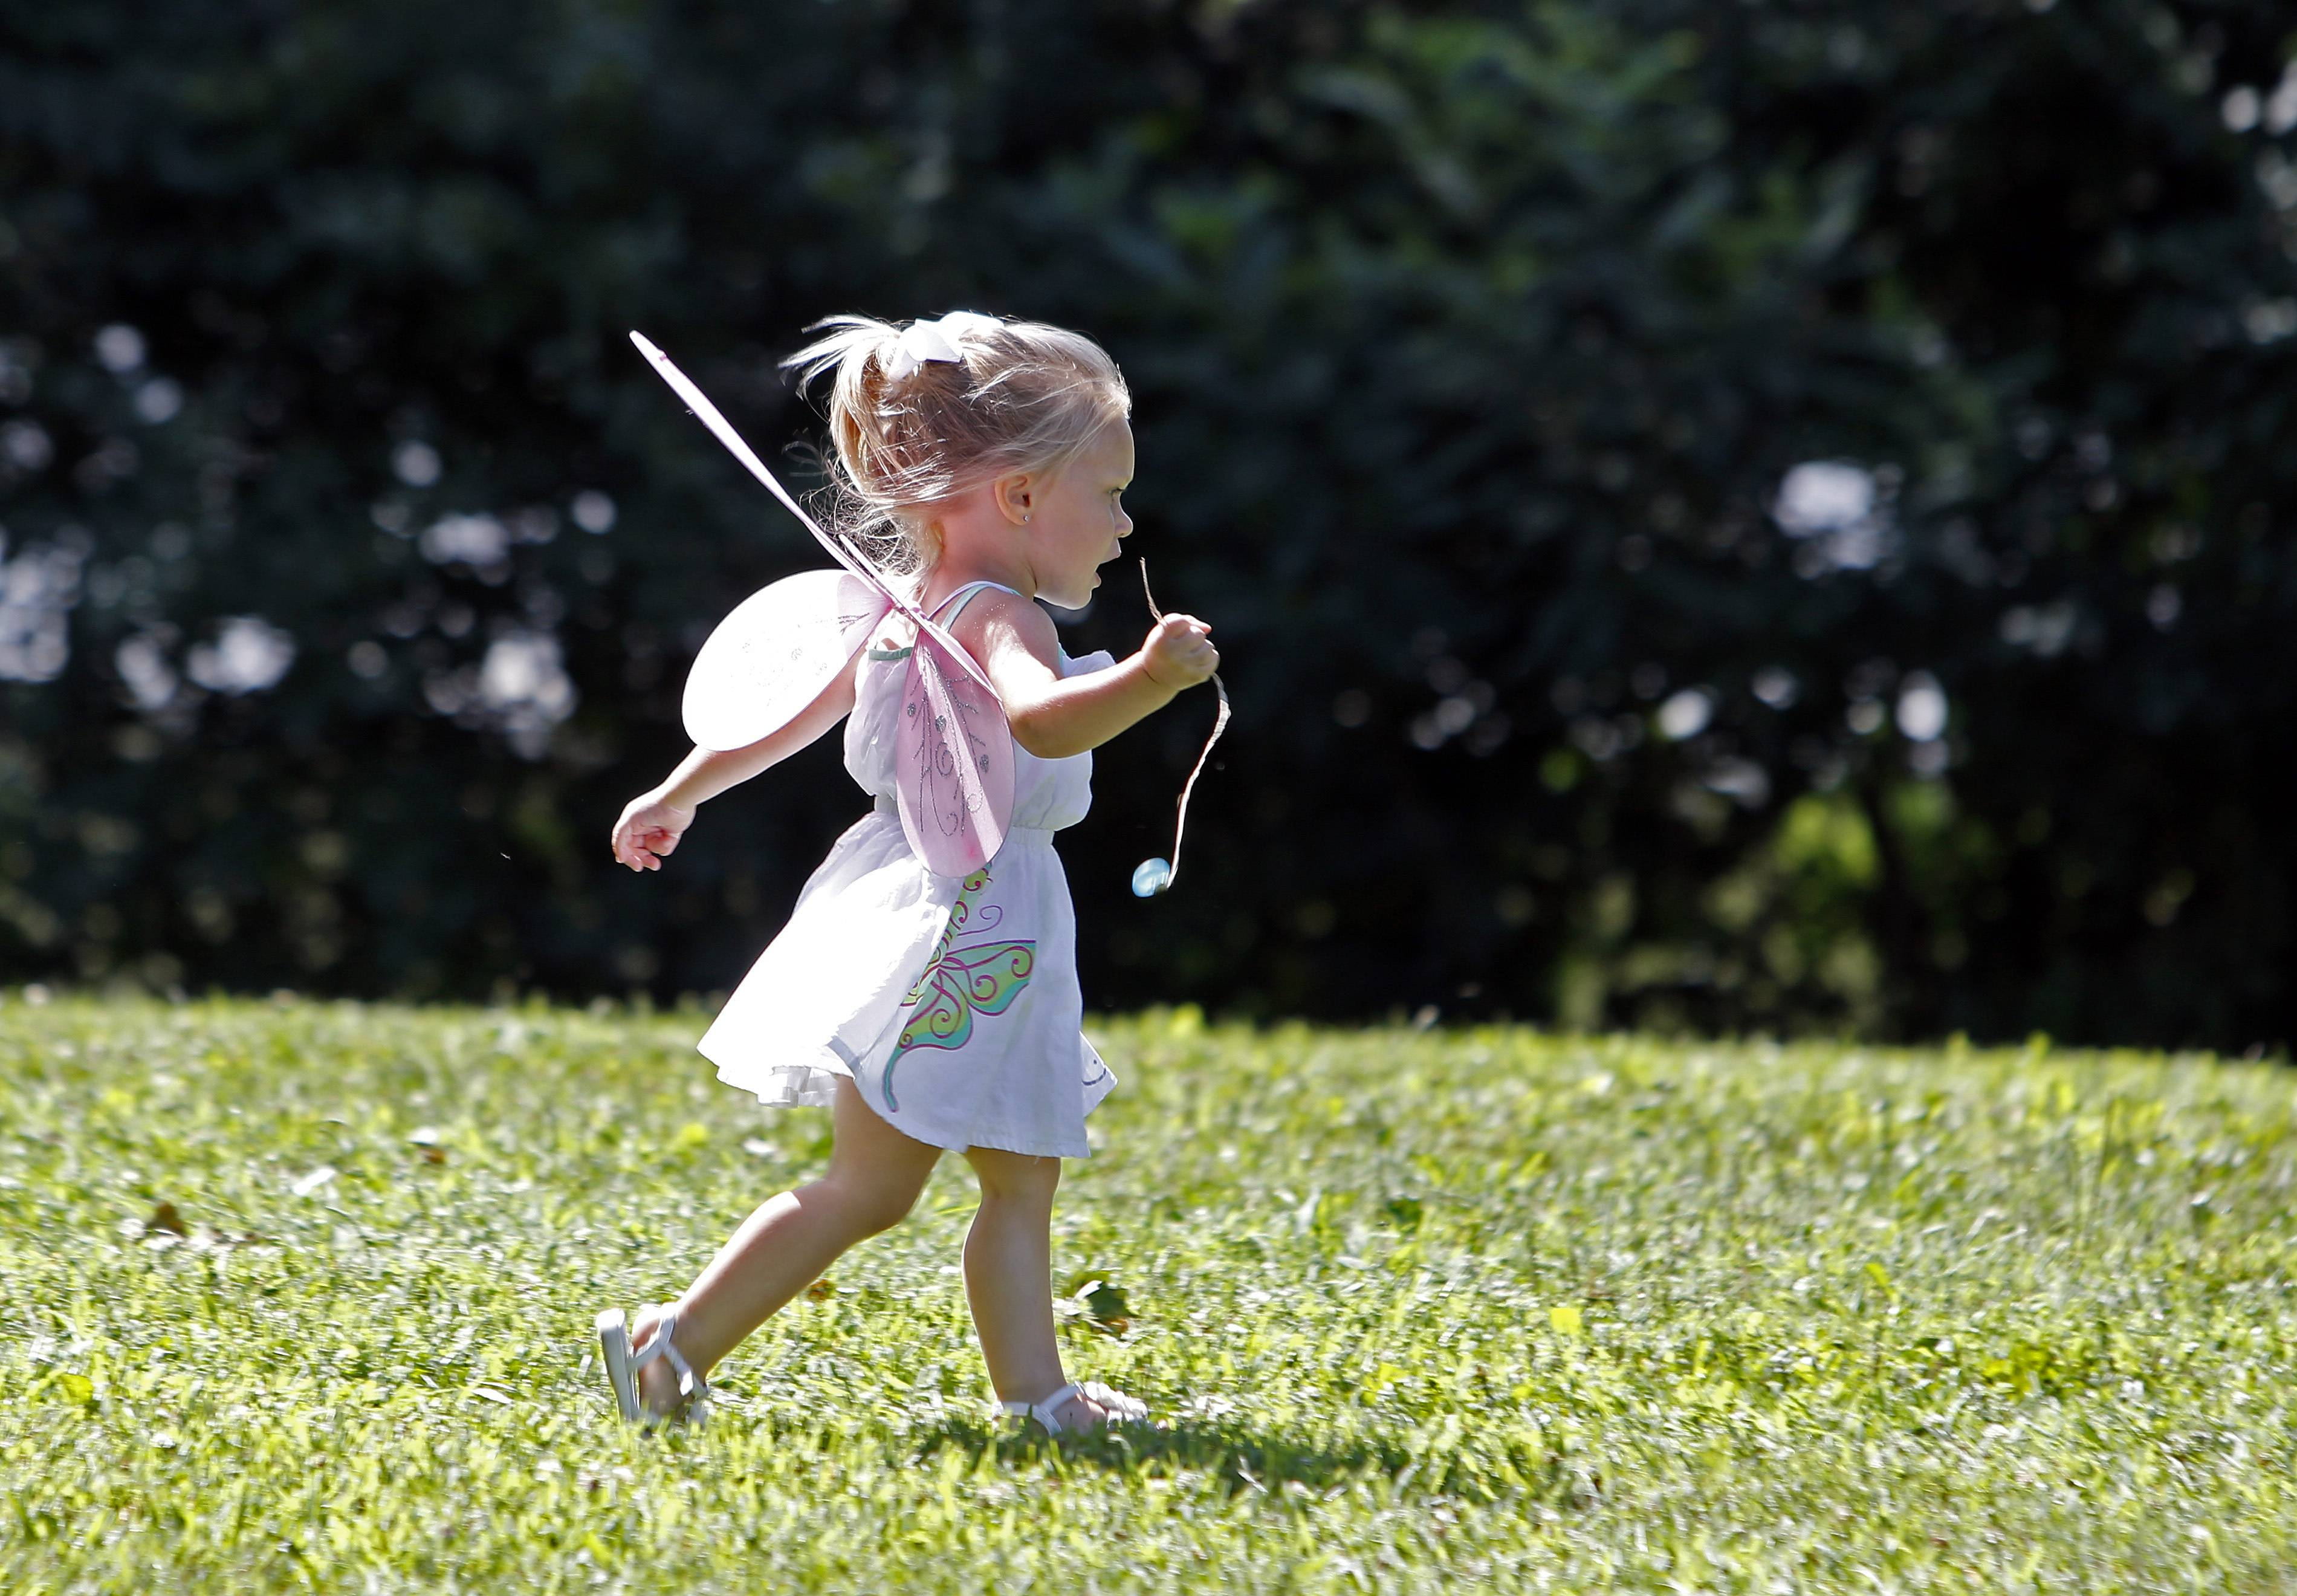 Dressed as a faerie, two-year-old Annabelle Haiduke of Marseilles, runs across a field during the 11th annual World of Faeries Festival Saturday at Vasa Park, in South Elgin.